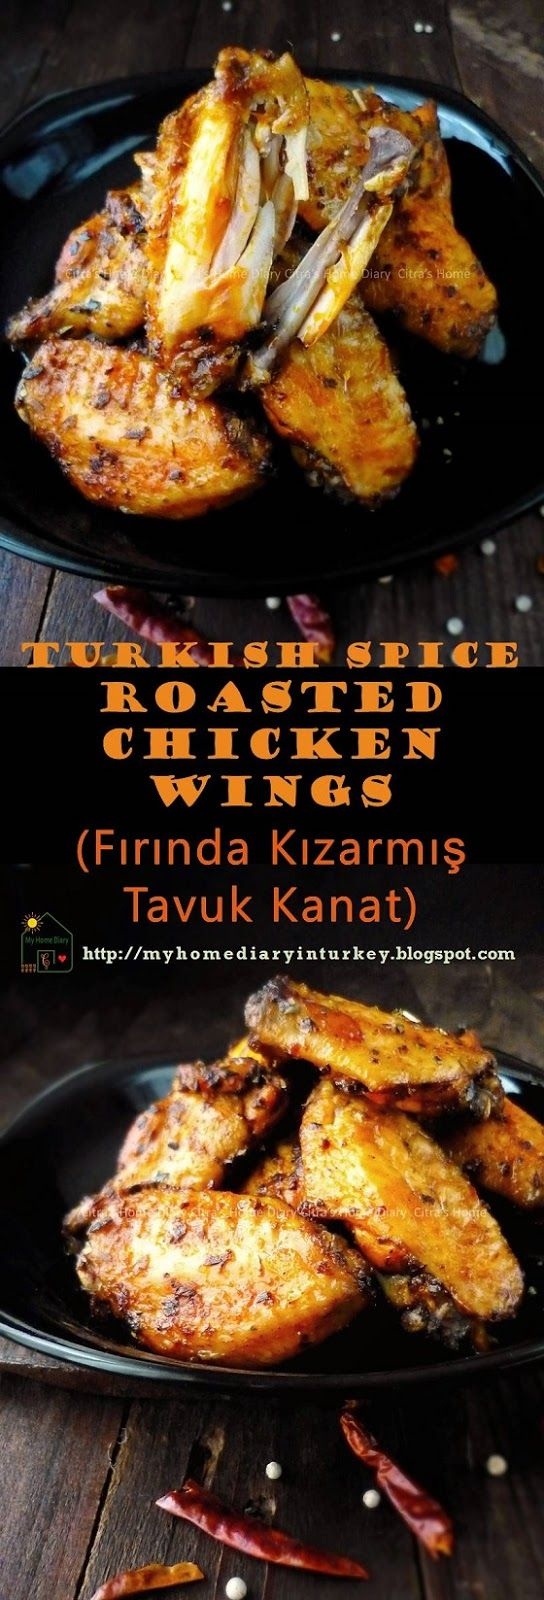 Turkish Spice Roasted Chicken Wings/ Fırında Kızarmış Tavuk Kanat.  copycat taste from rotisserie chicken wing seller here in city where İ live (or maybe other cities in Turkey). #rotisseriechicken #chickenrecipe #turkishfoodrecipe #resepayam #ayampanggangoven #chickenwings